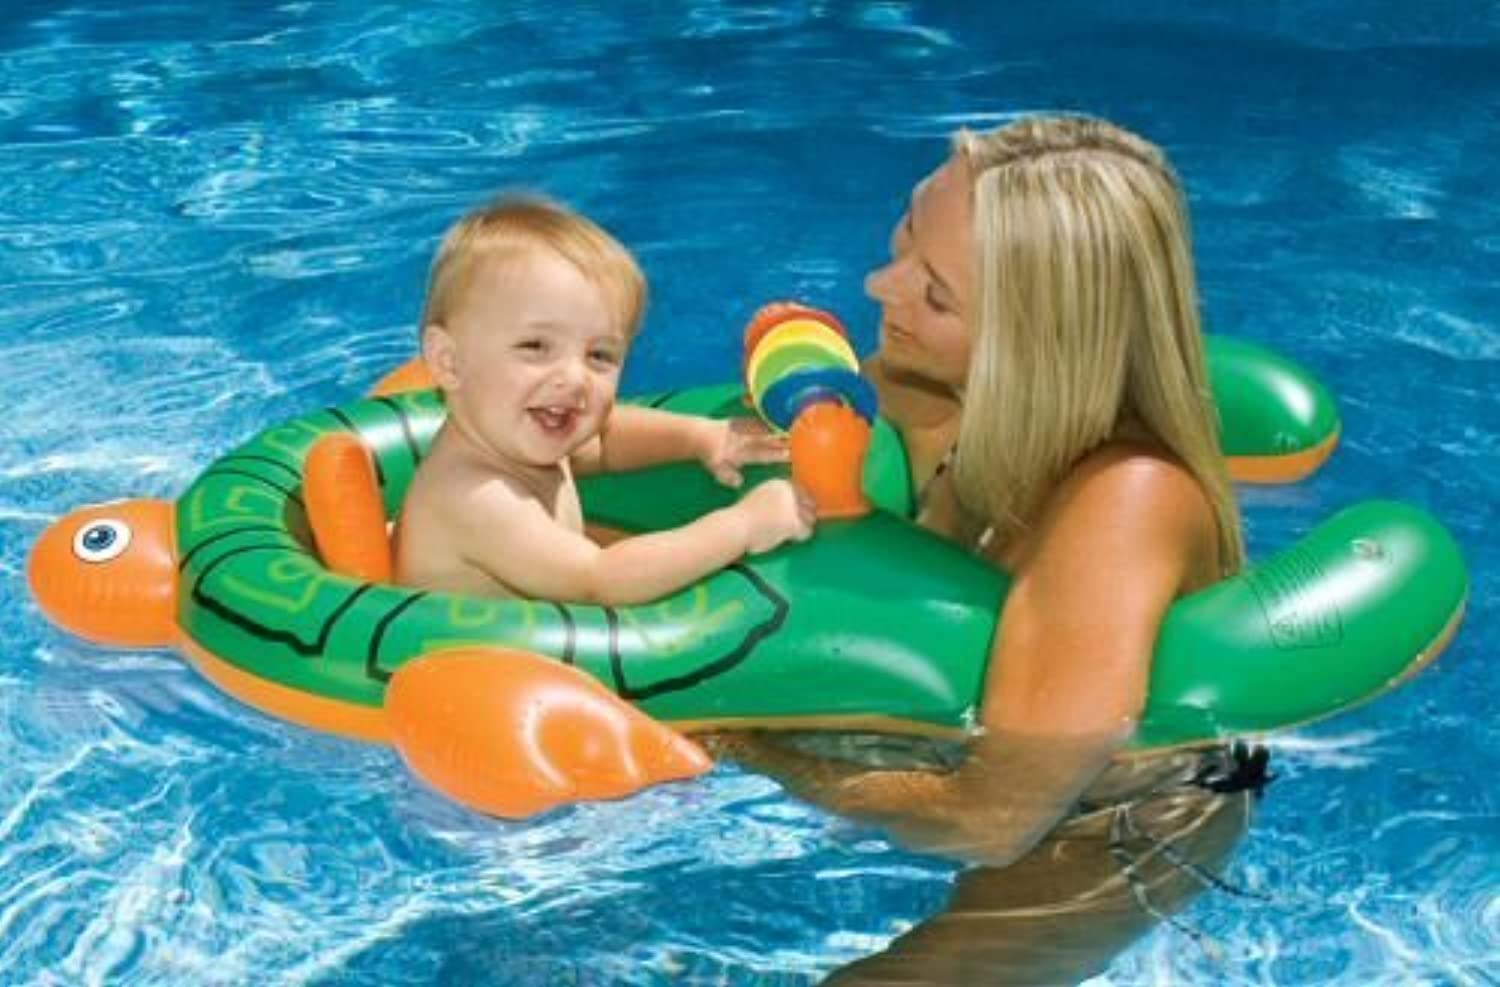 Inflatable Me & You Baby Pool Float goldfish by Not Found